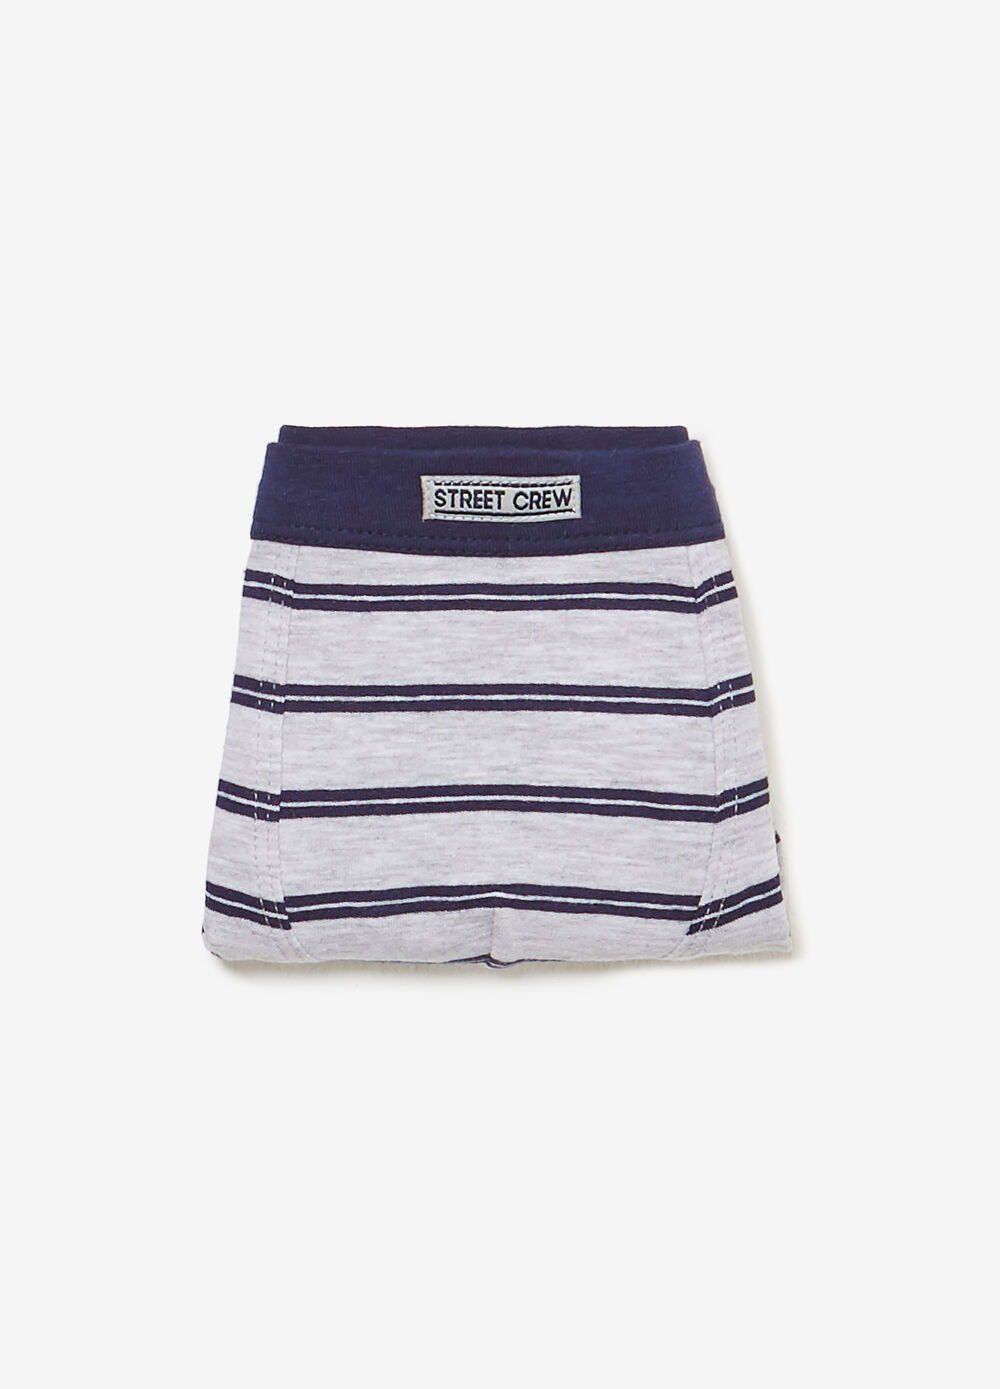 Boxer cotone e viscosa stretch righe